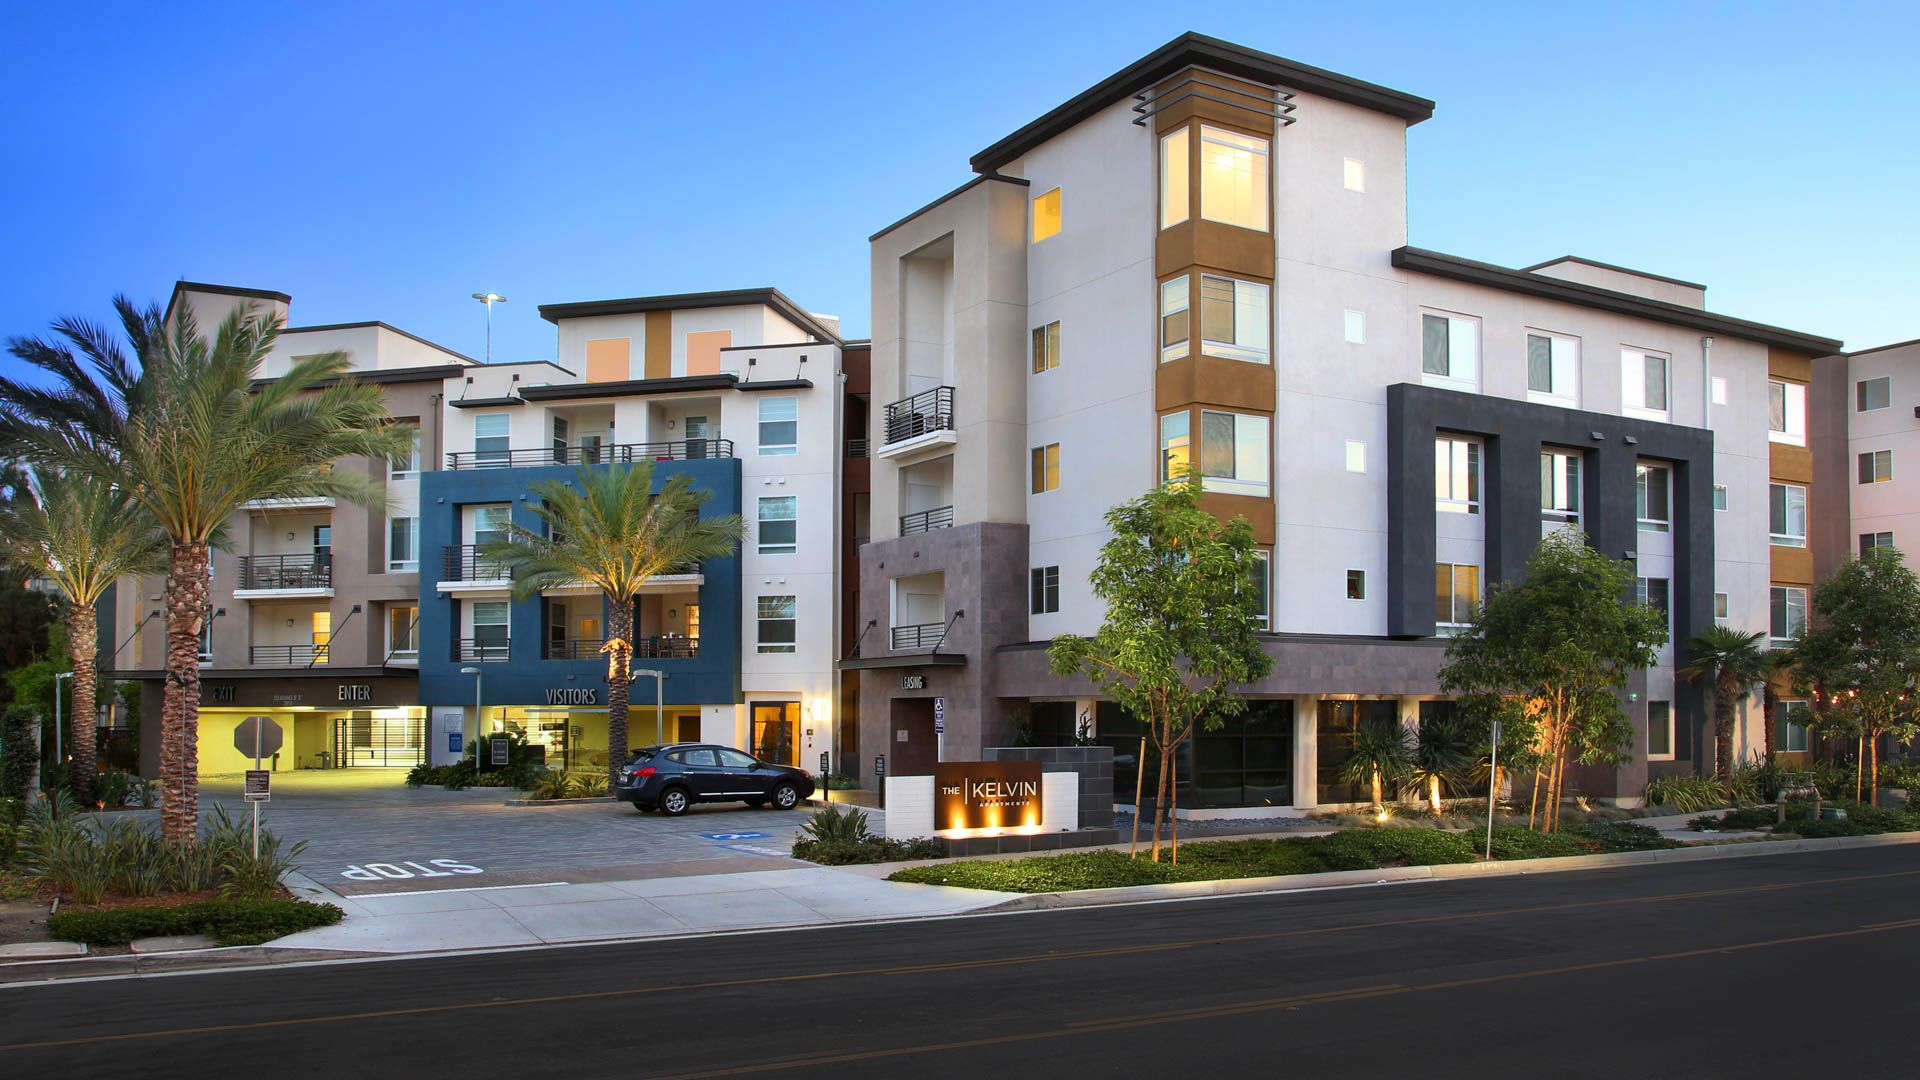 Toscana Apartments Irvine Ca Via Lucca Equityapartments Com